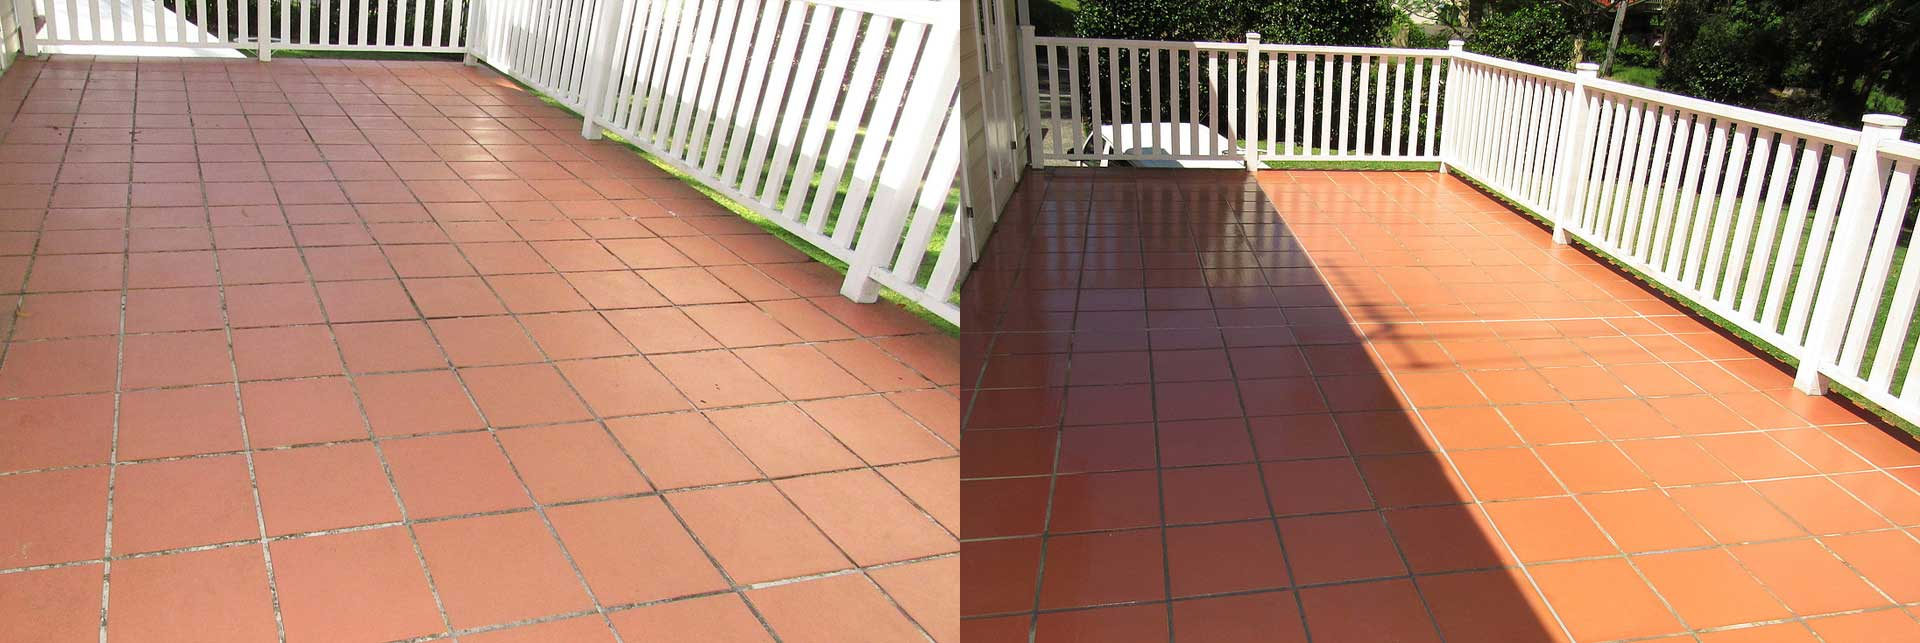 balcony-before-after